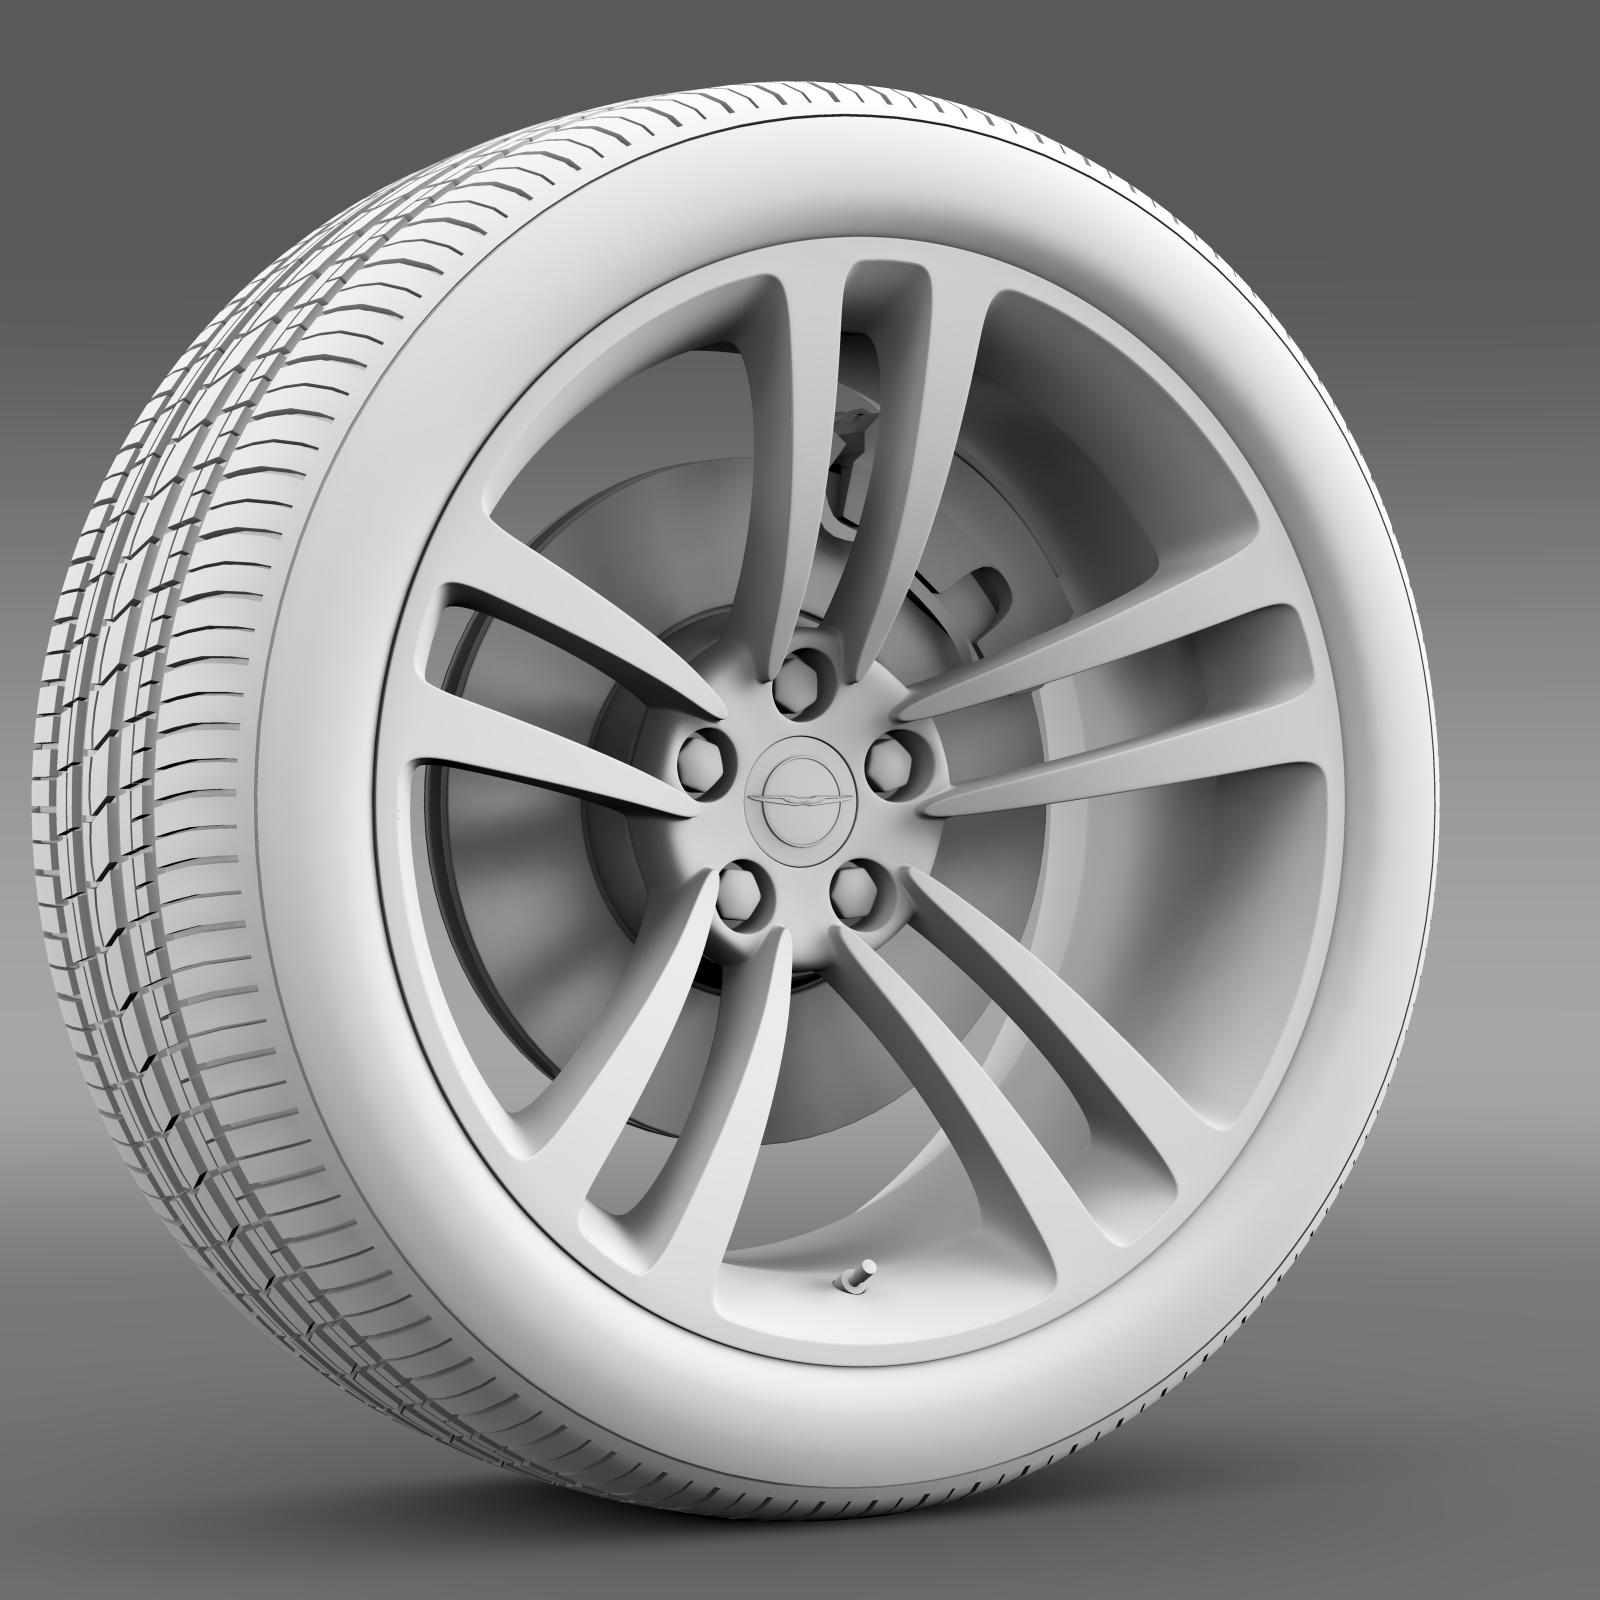 chrysler 300 srt8 core wheel 3d model 3ds max fbx c4d lwo ma mb hrc xsi obj 210634